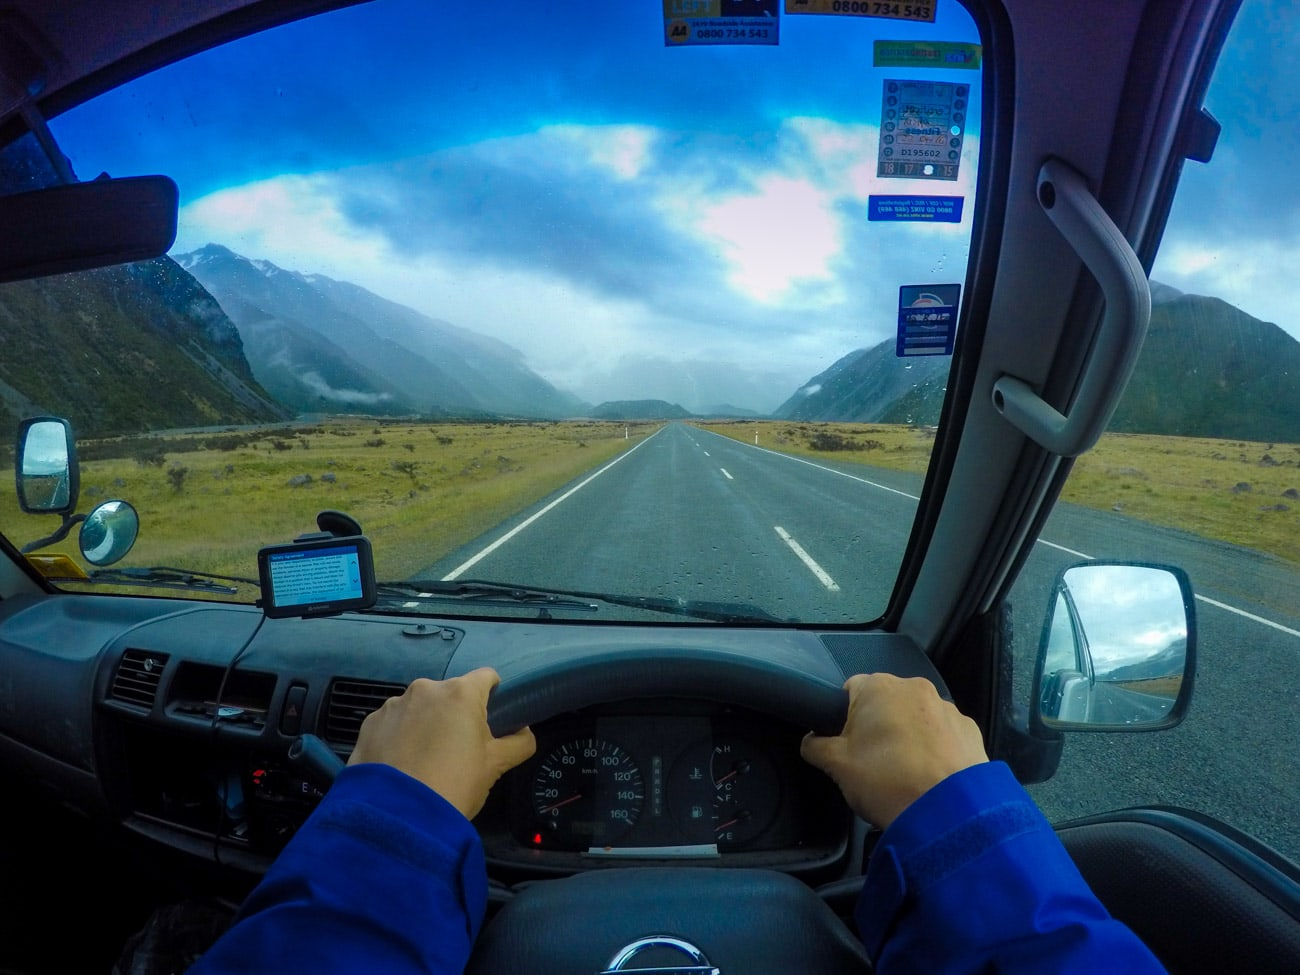 Get ready to navigate those roundabouts while driving on the left side of the road. Here's my essential tips and the key laws you need to be aware of before getting behind the wheel & driving in New Zealand.